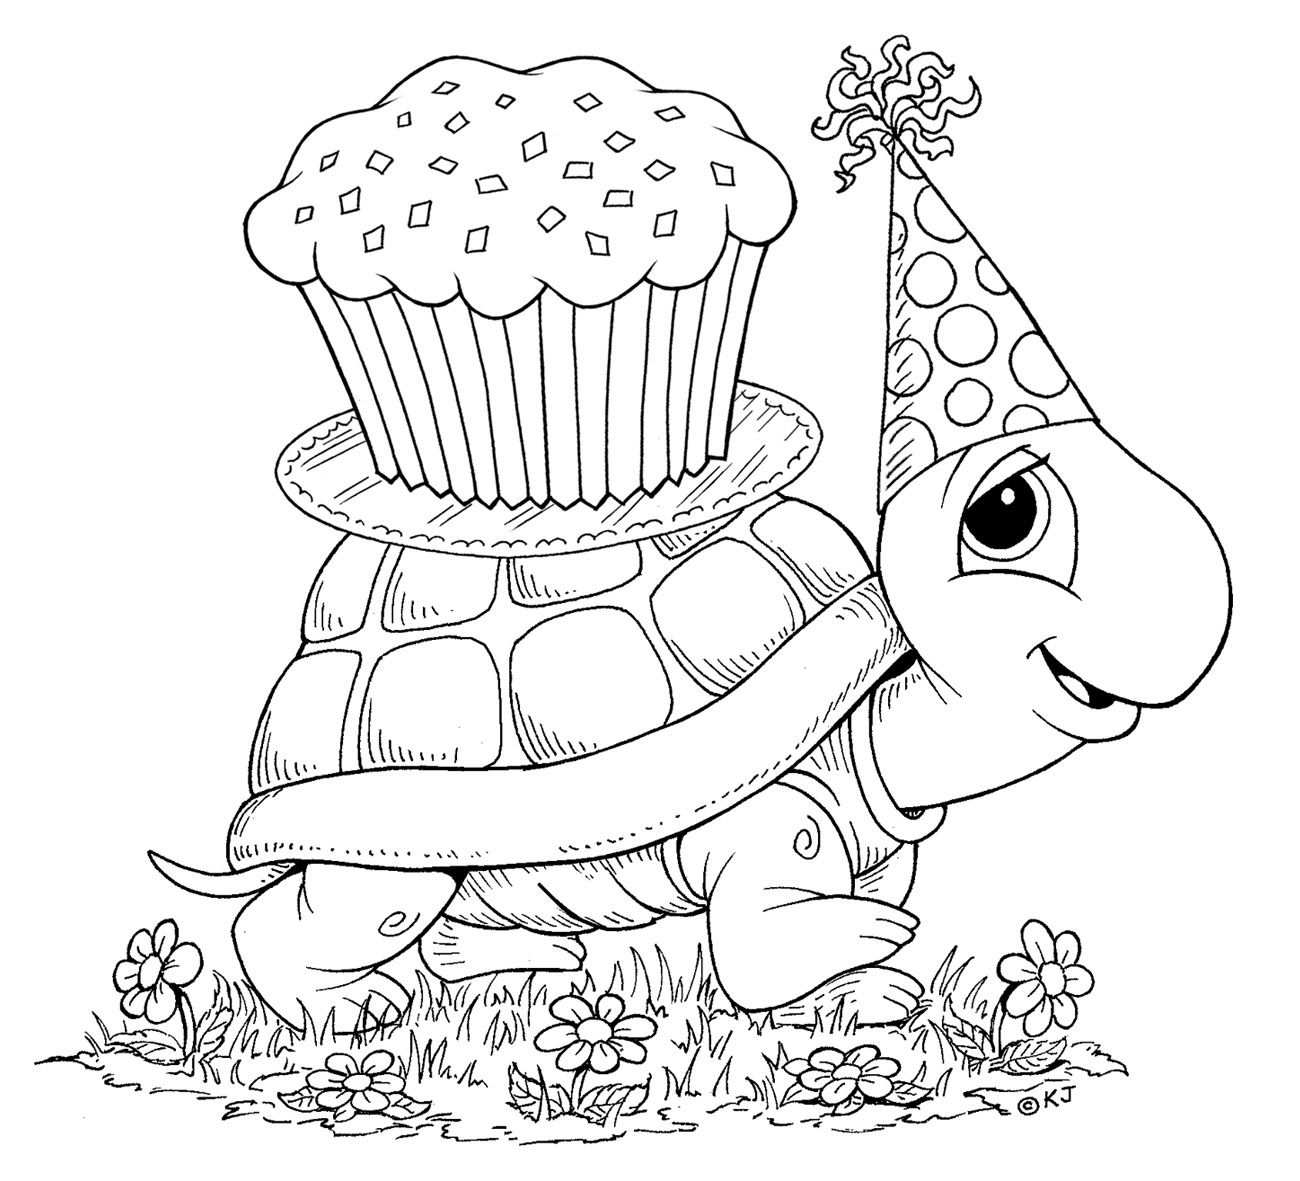 Pin By Wanda Yagla On Images To Color With Images Digi Stamps